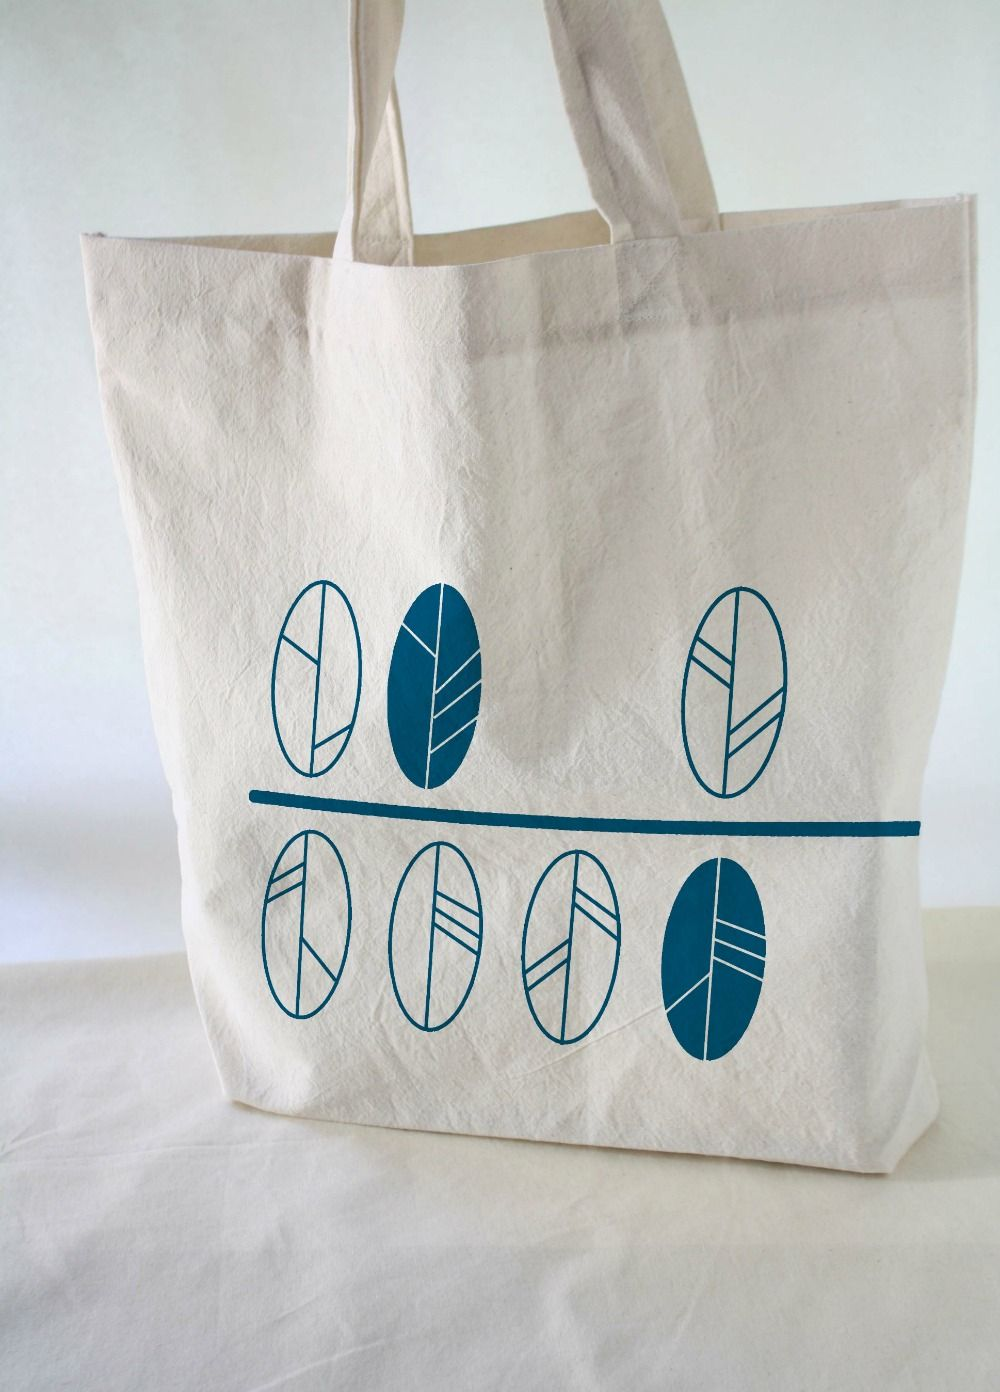 607c84c063 Eco Friendly Cotton Bags - Cotton Tote Bag/ Promotional Shopping Bag Sofar  International are manufacturing all kind of muslin bag, coin bag, shopping  bag, ...